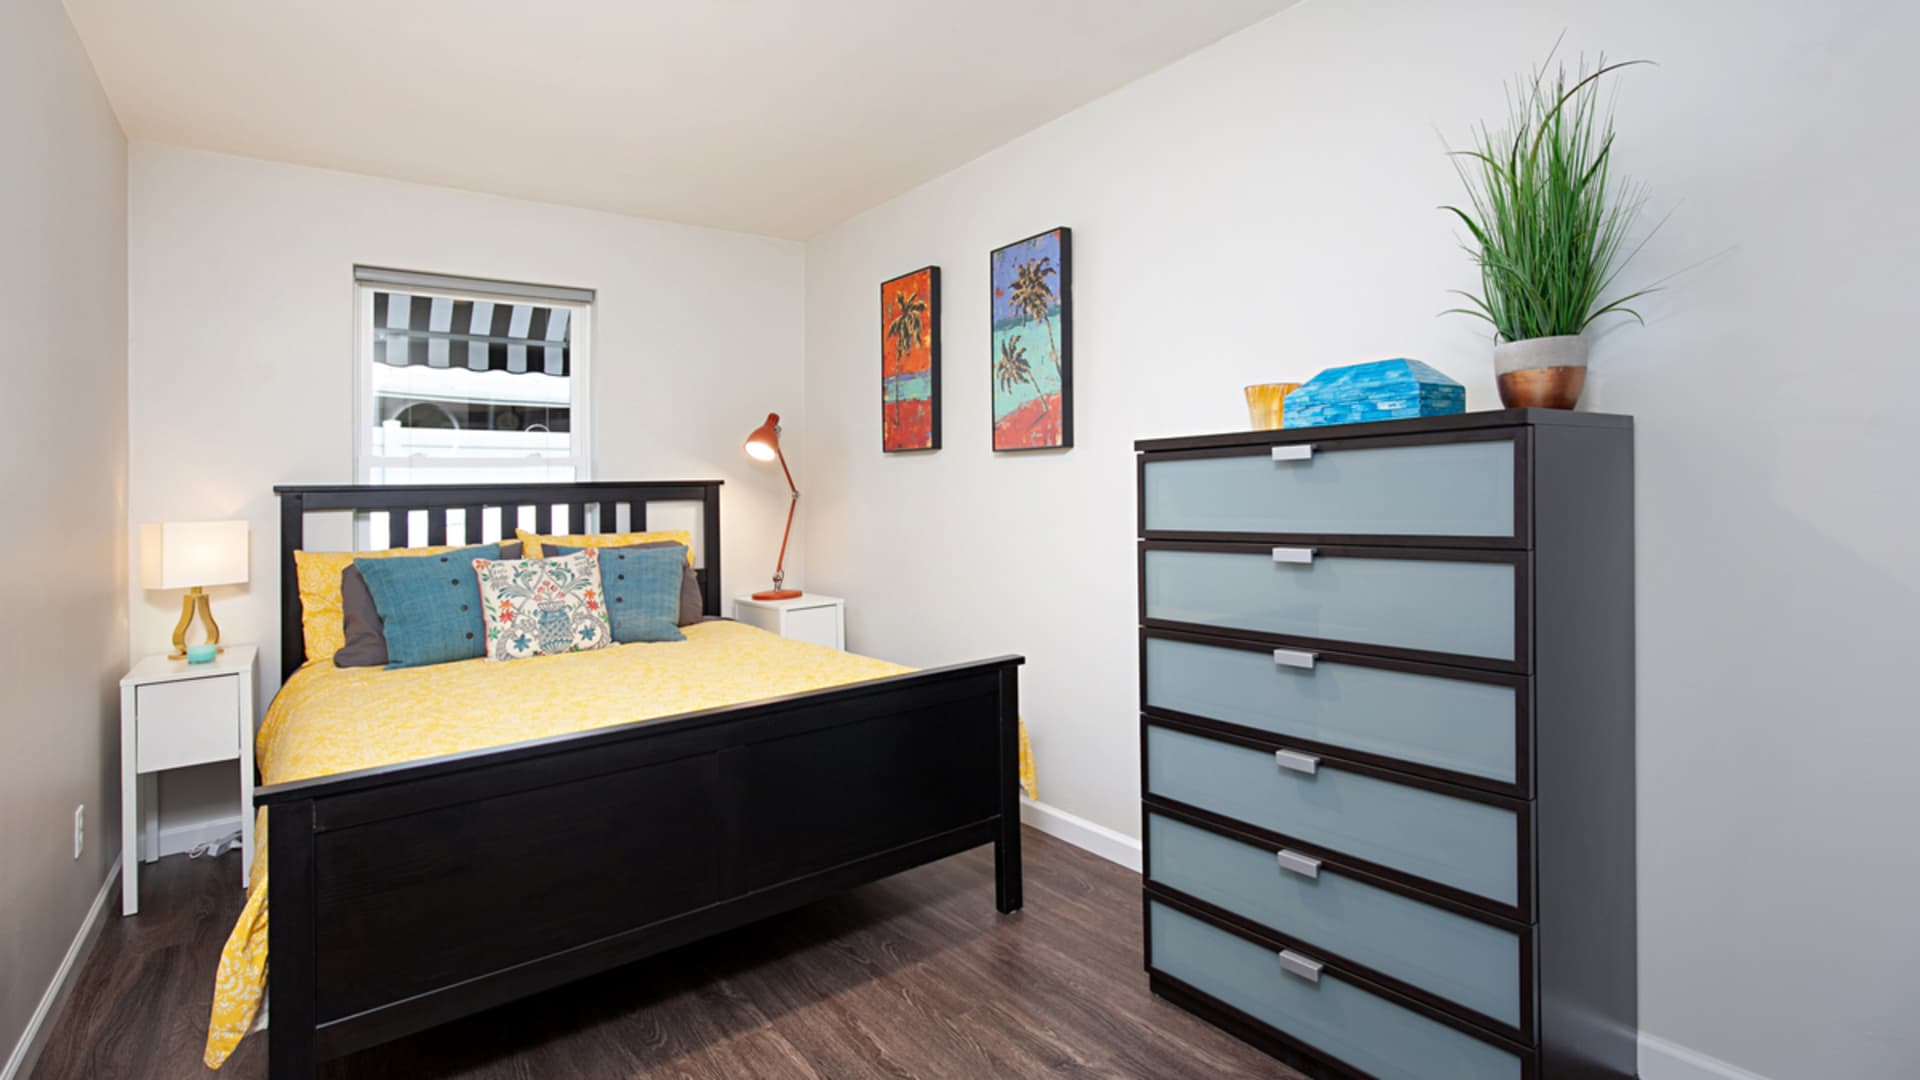 An interior view of Amy O'Dorisio's one-bedroom rental unit.